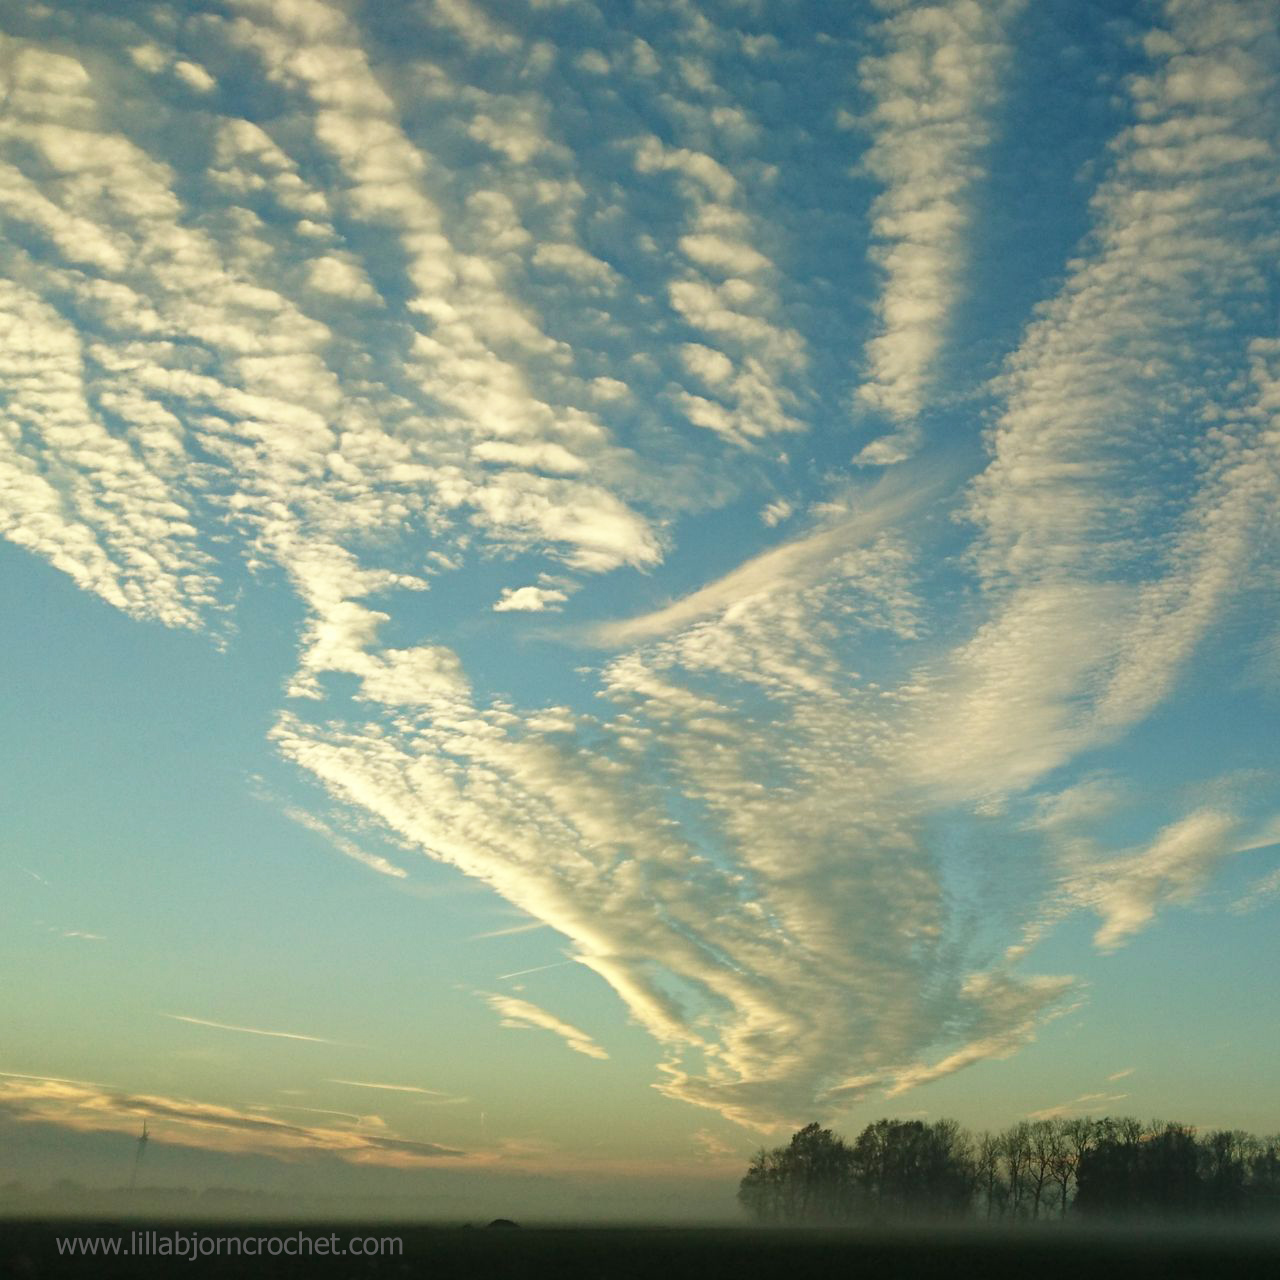 Autumn Sky in the Netherlands